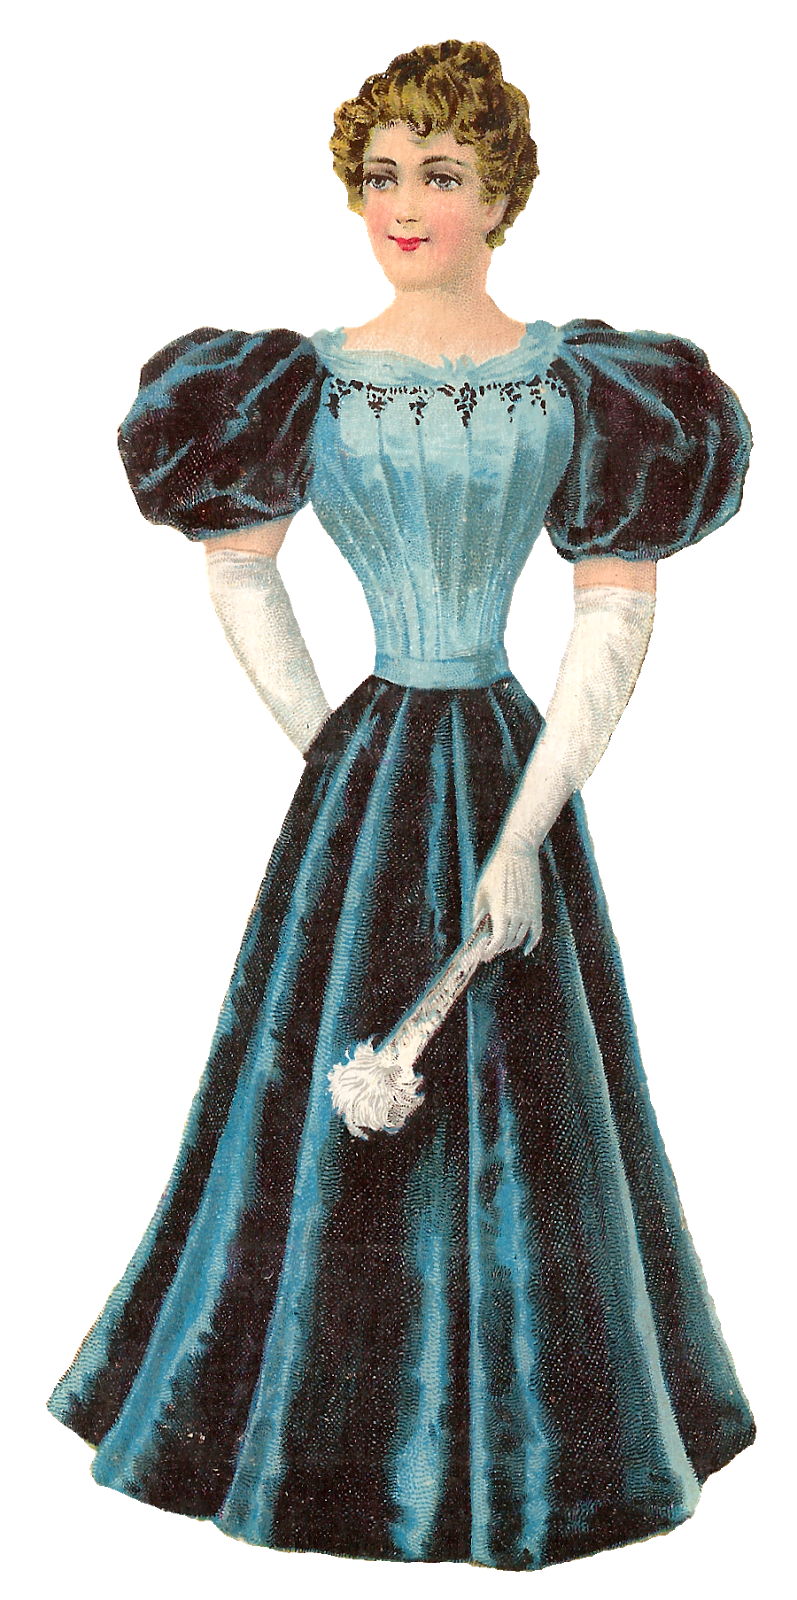 Dress clipart ball gown. Antique images victorian women